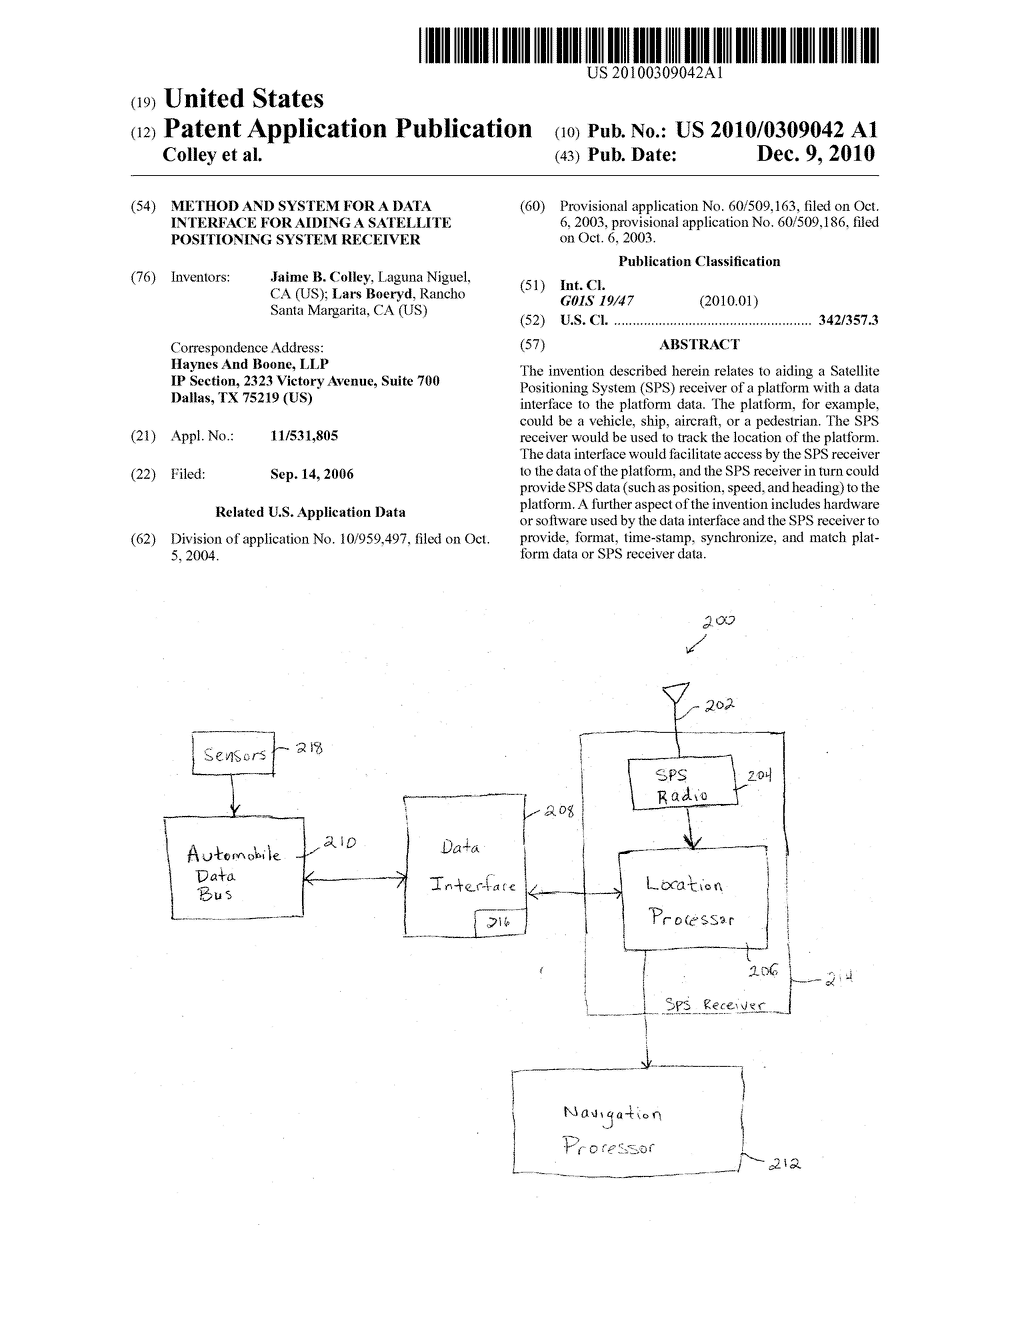 METHOD AND SYSTEM FOR A DATA INTERFACE FOR AIDING A SATELLITE POSITIONING SYSTEM RECEIVER - diagram, schematic, and image 01